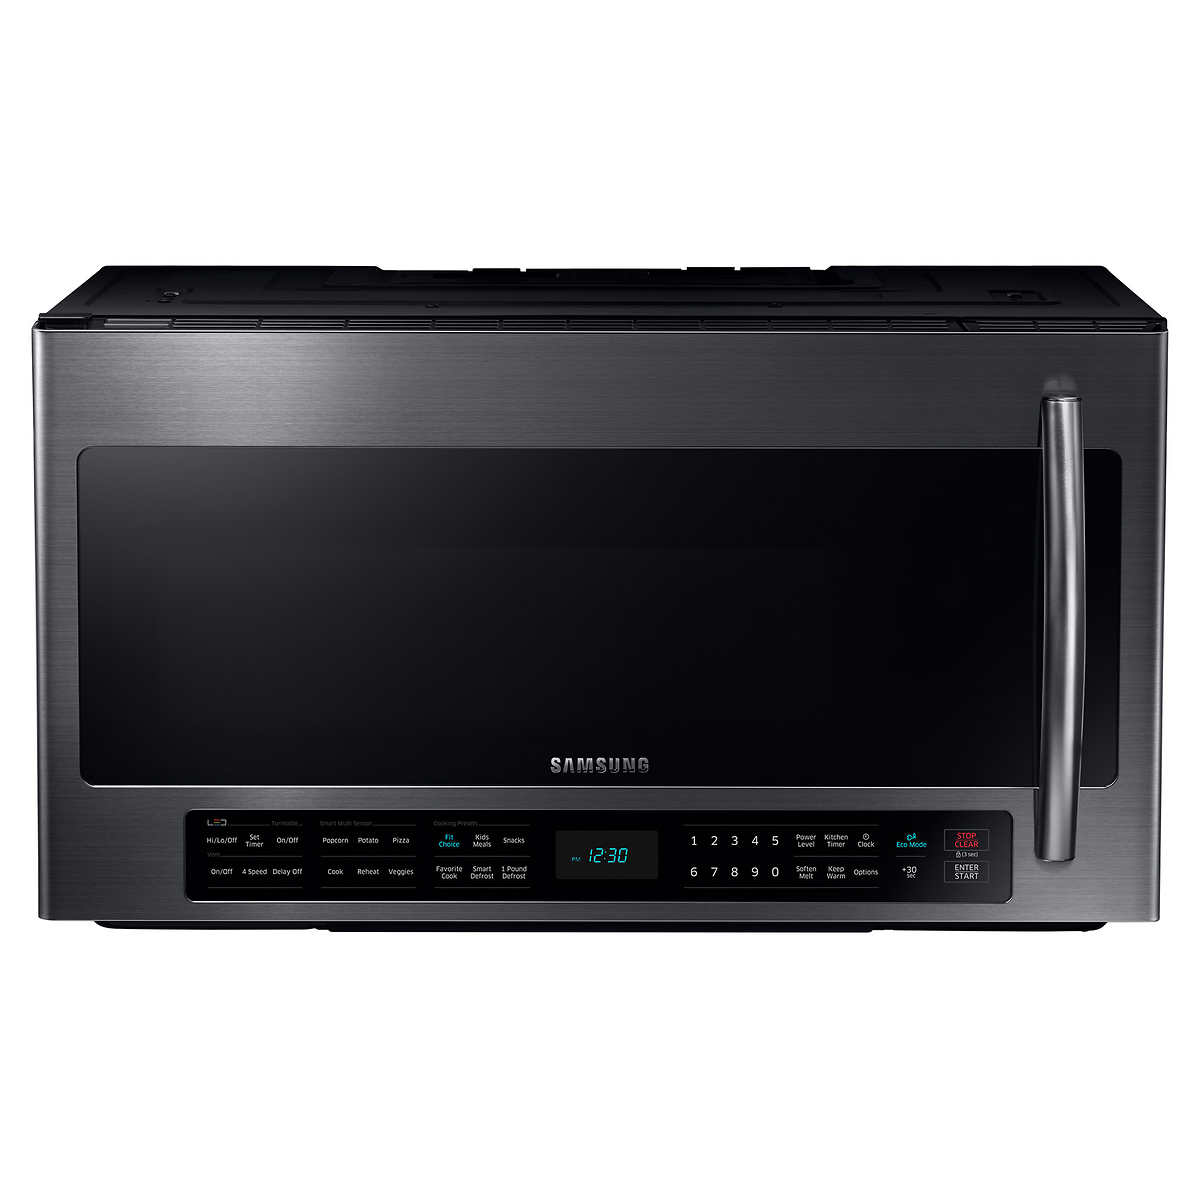 Samsung 2 1cuft Over The Range Microwave With Multi Sensor Cooking In Black